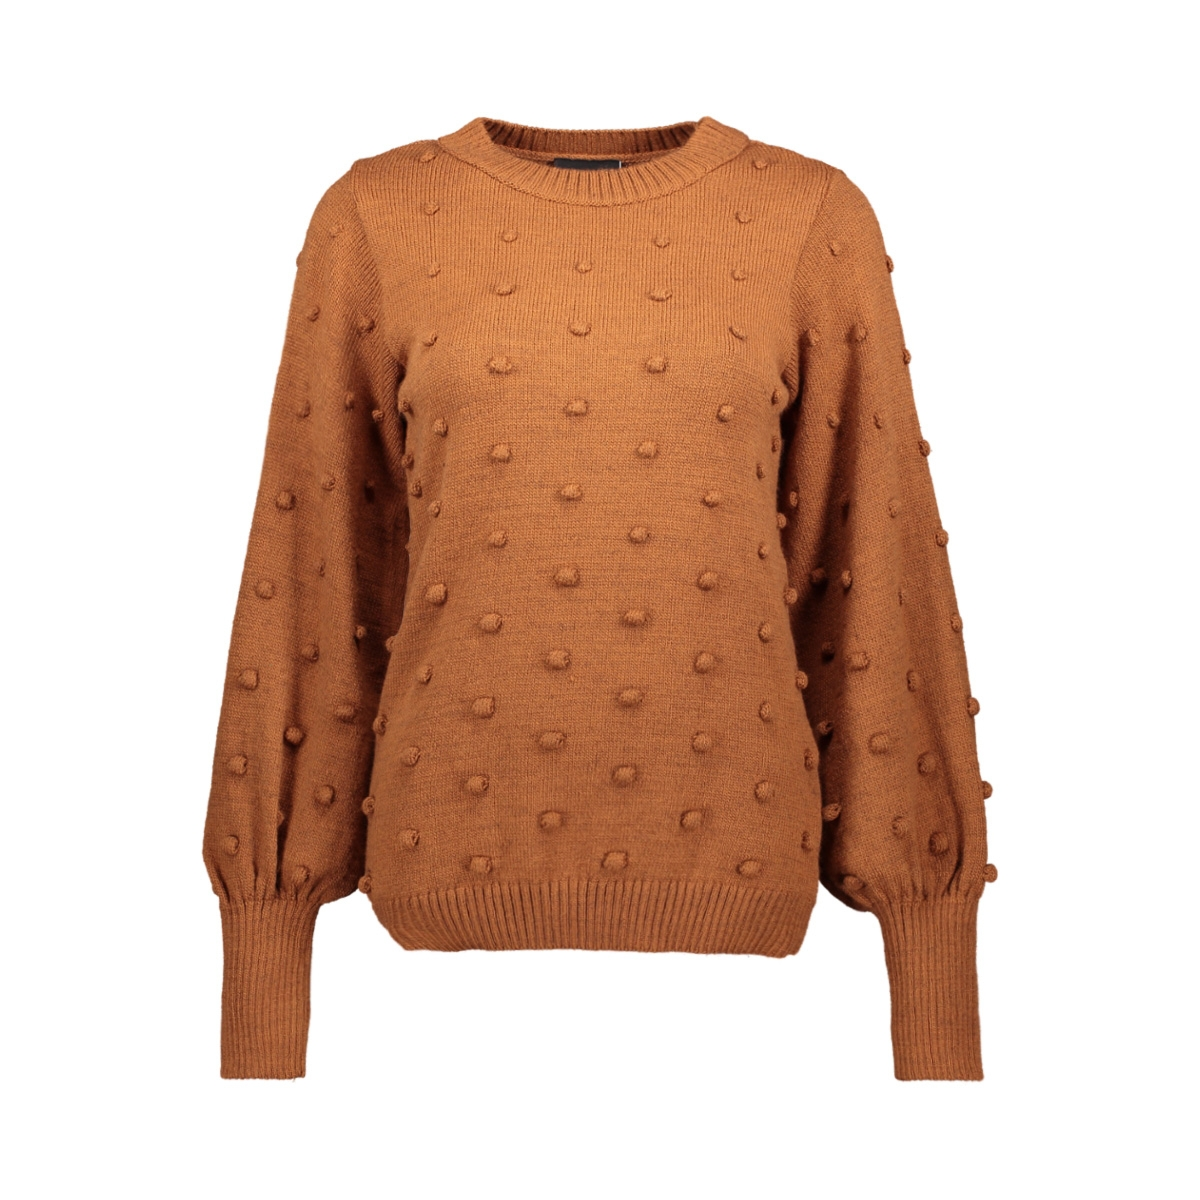 objbouble l/s knit pullover div 23027743 object trui brown patina